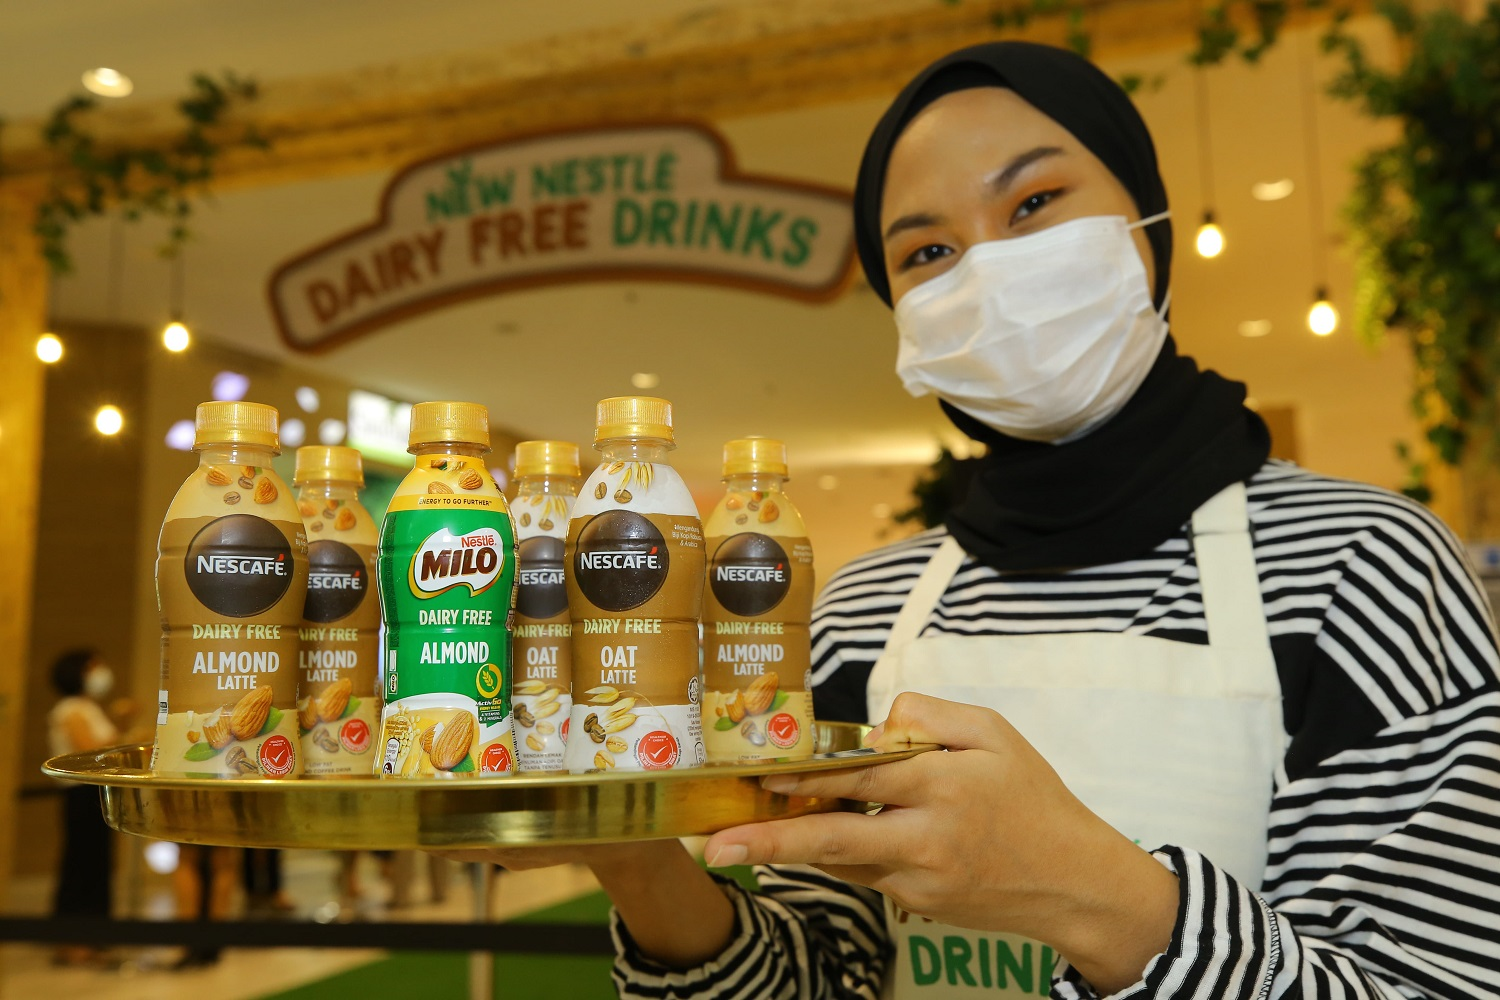 Nestlé Debuts All-New Dairy Free MILO and NESCAFÉ, Malaysia's All-Time Favourite Drinks